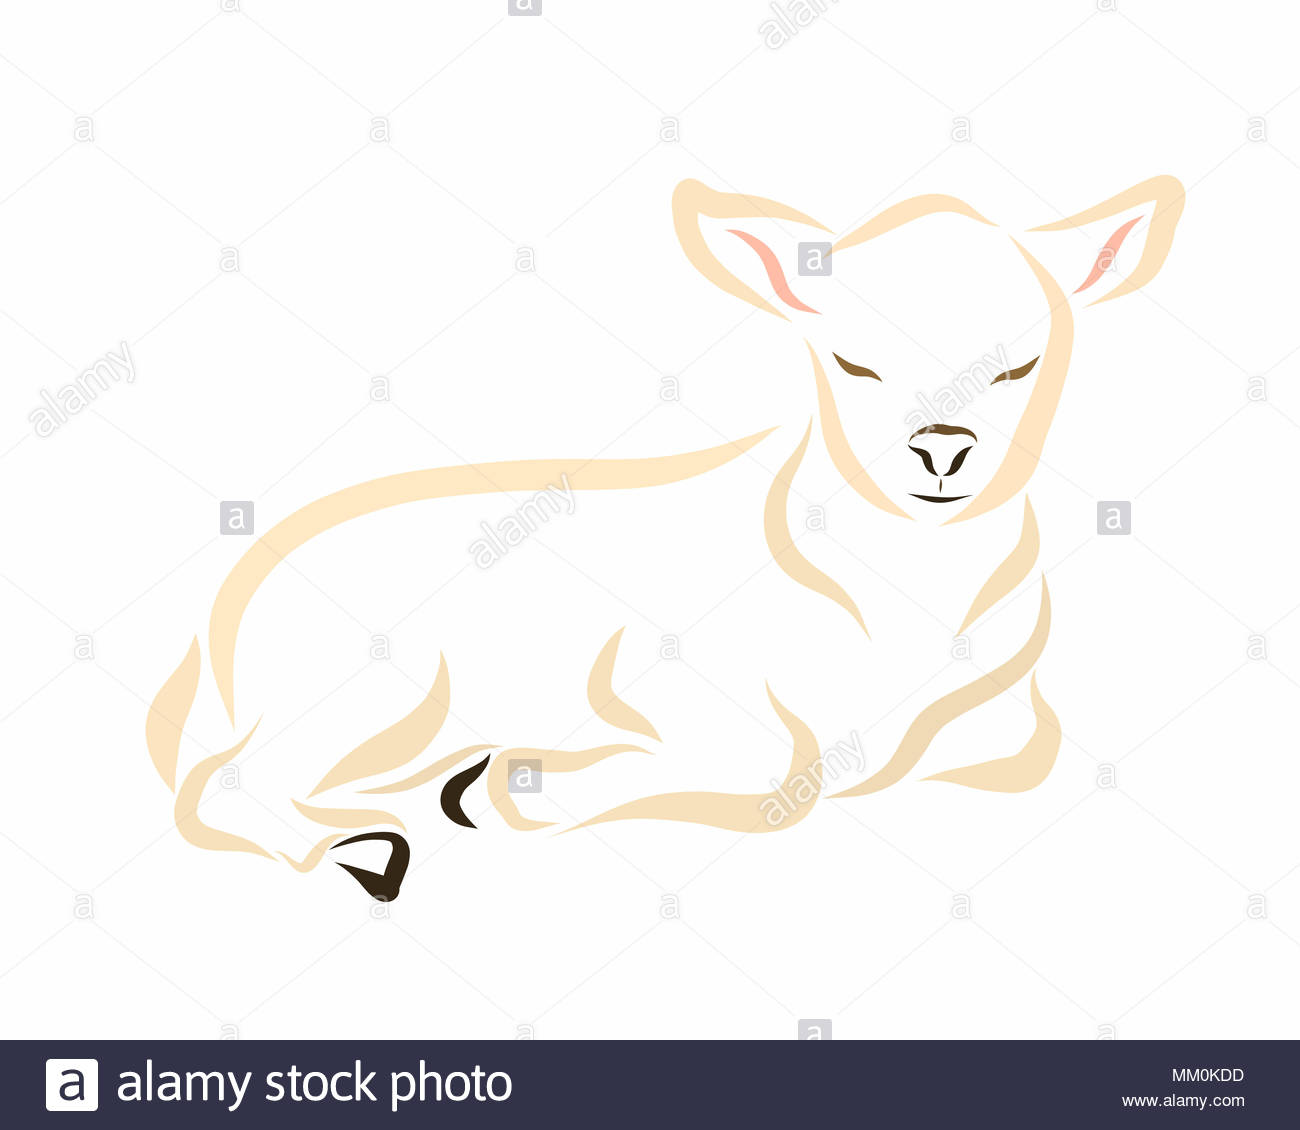 Sleeping Lamb Or Calf Pet Or Christian Symbol Stock Photo